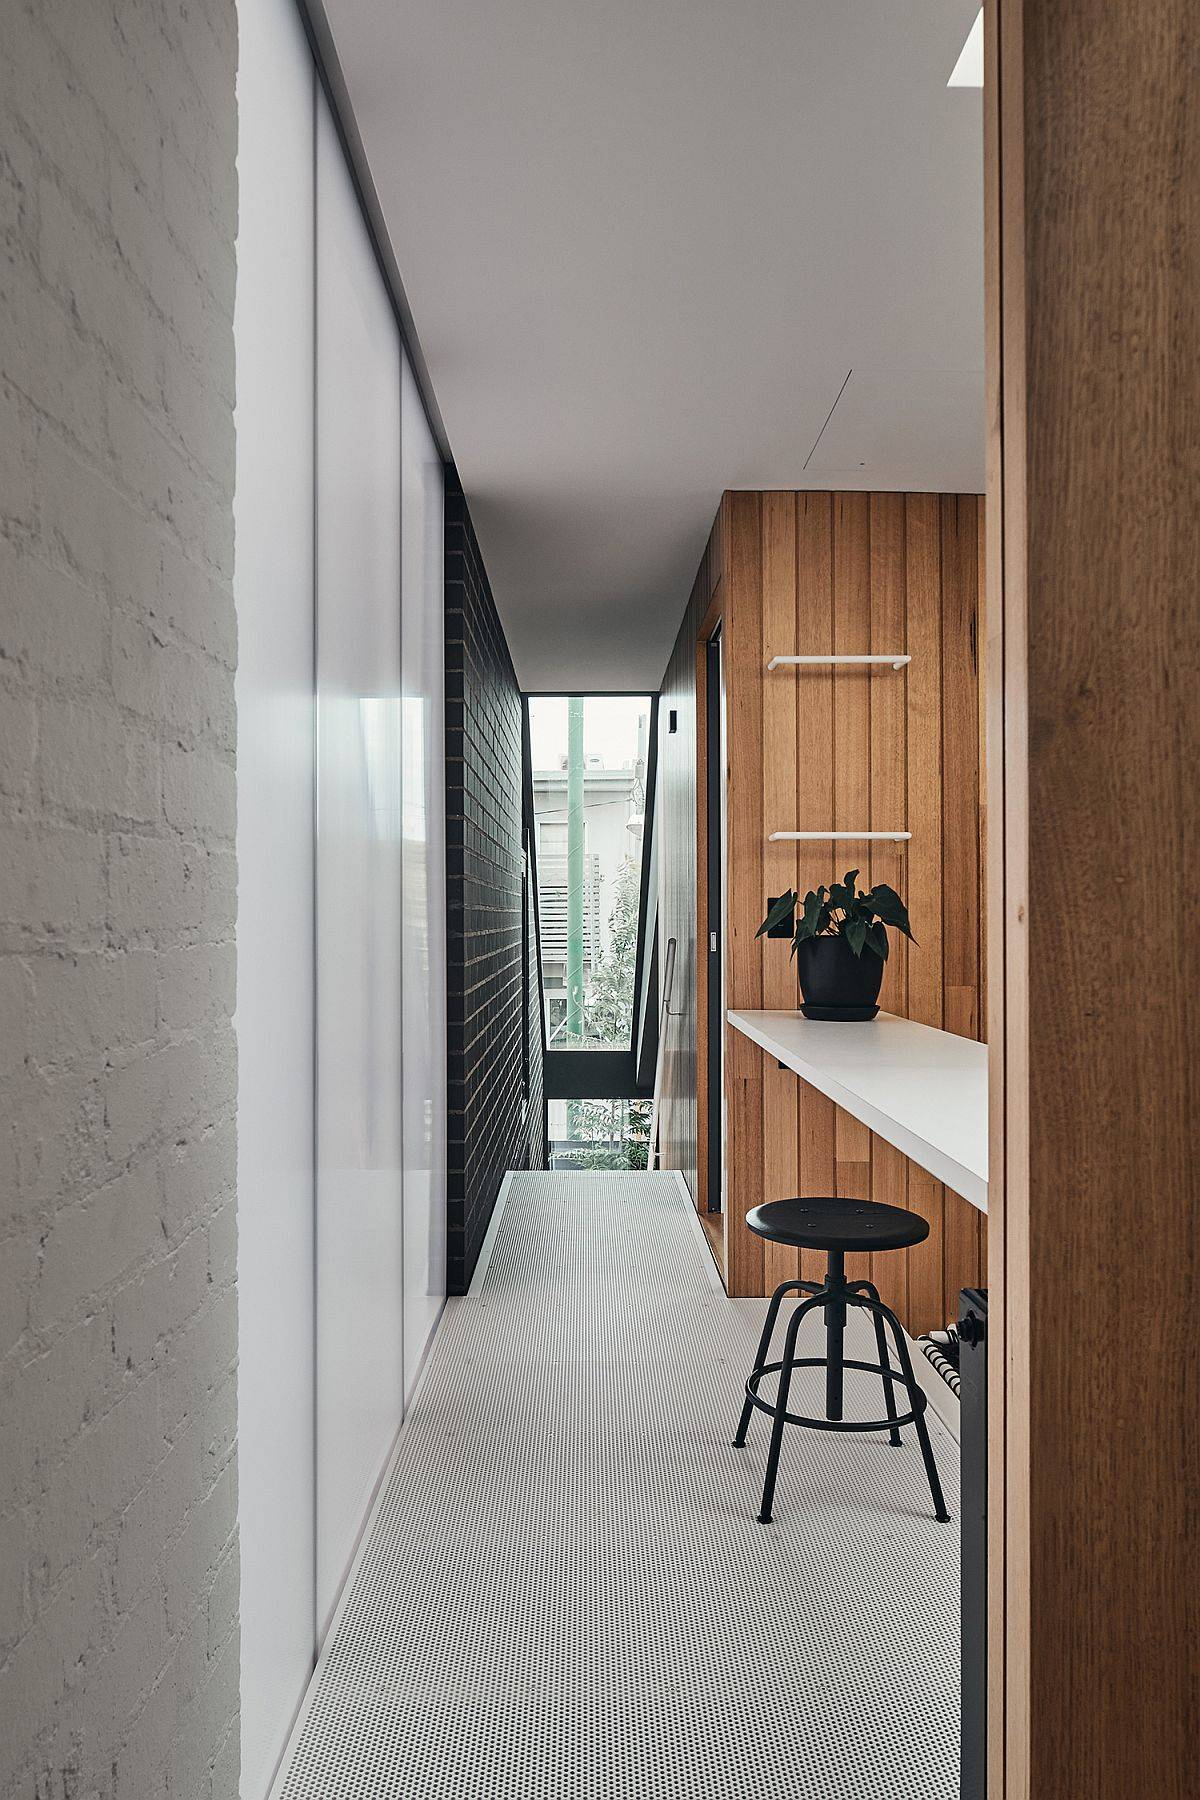 Painted brick walls, polycarbonate panels and woodsy finishes combined inside the smart Aussie home